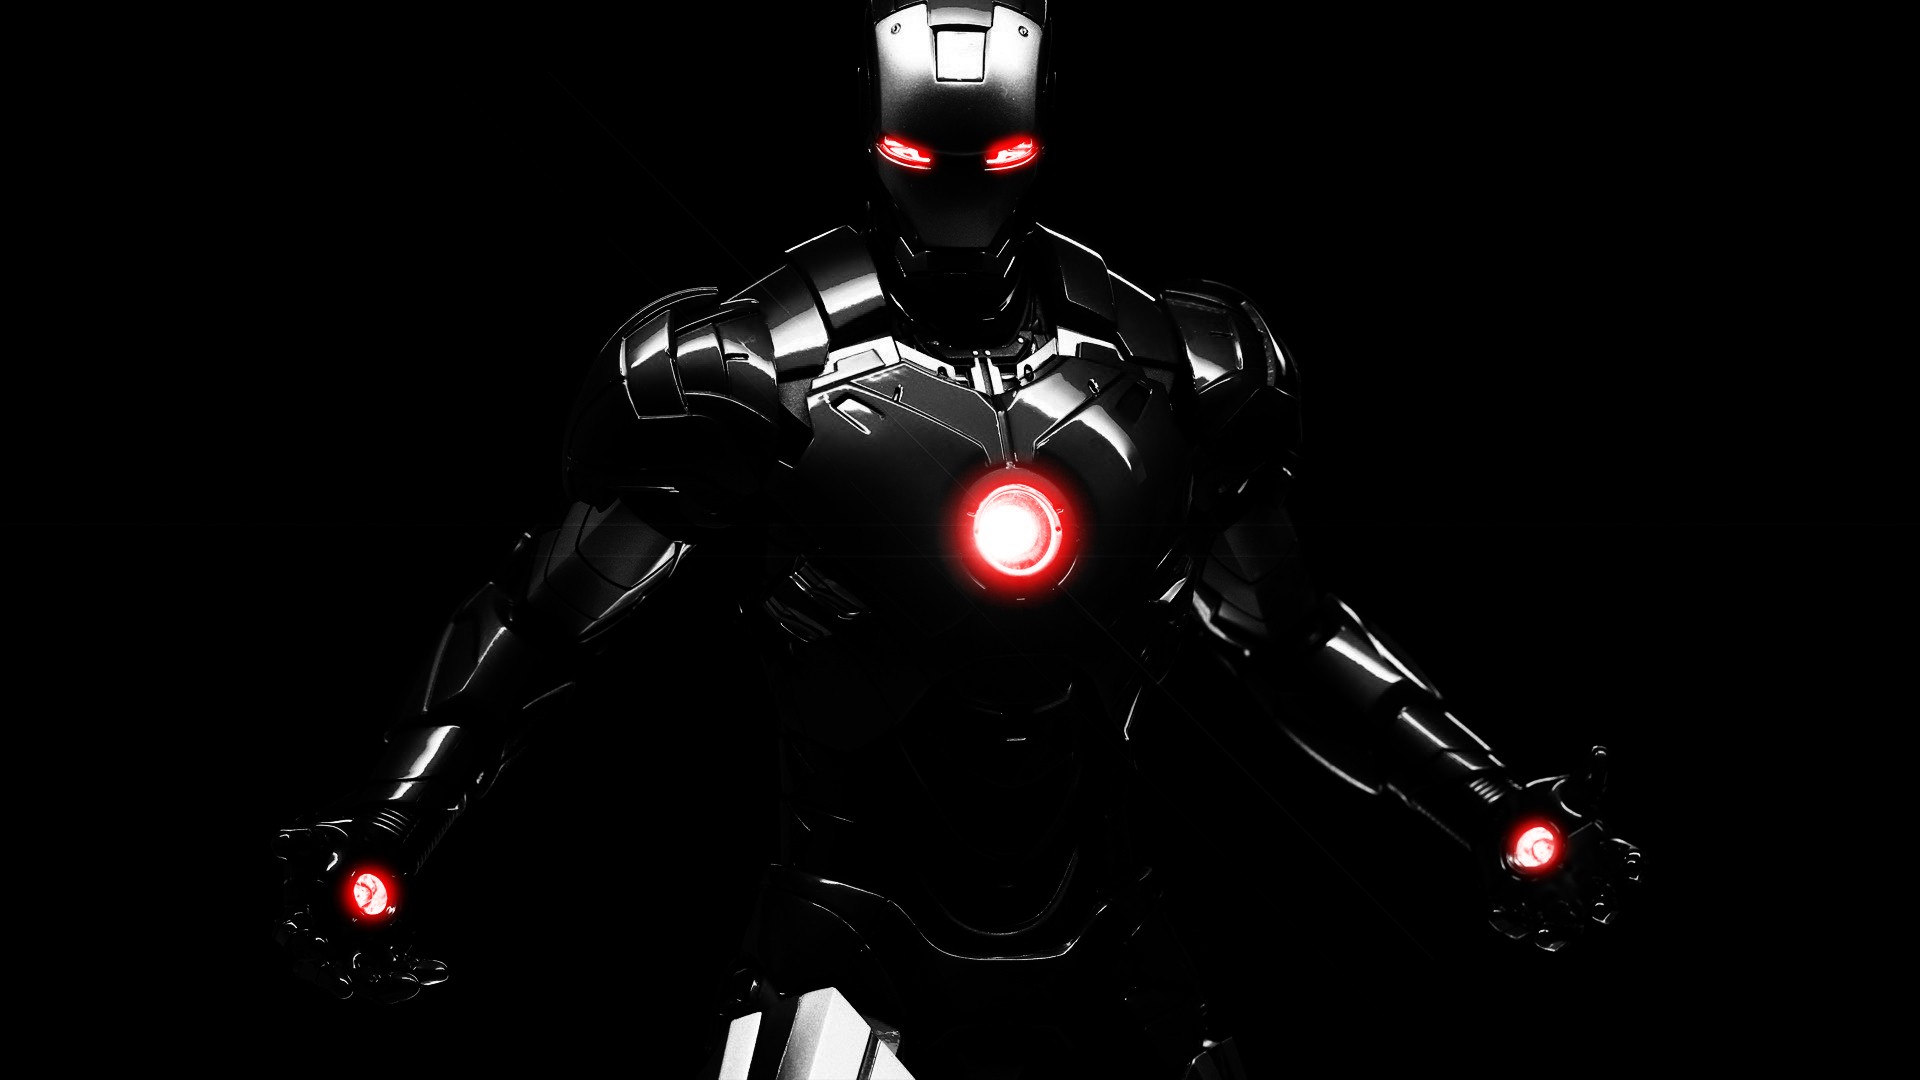 Desktop Wallpaper High Definition In 1080p With Iron Man